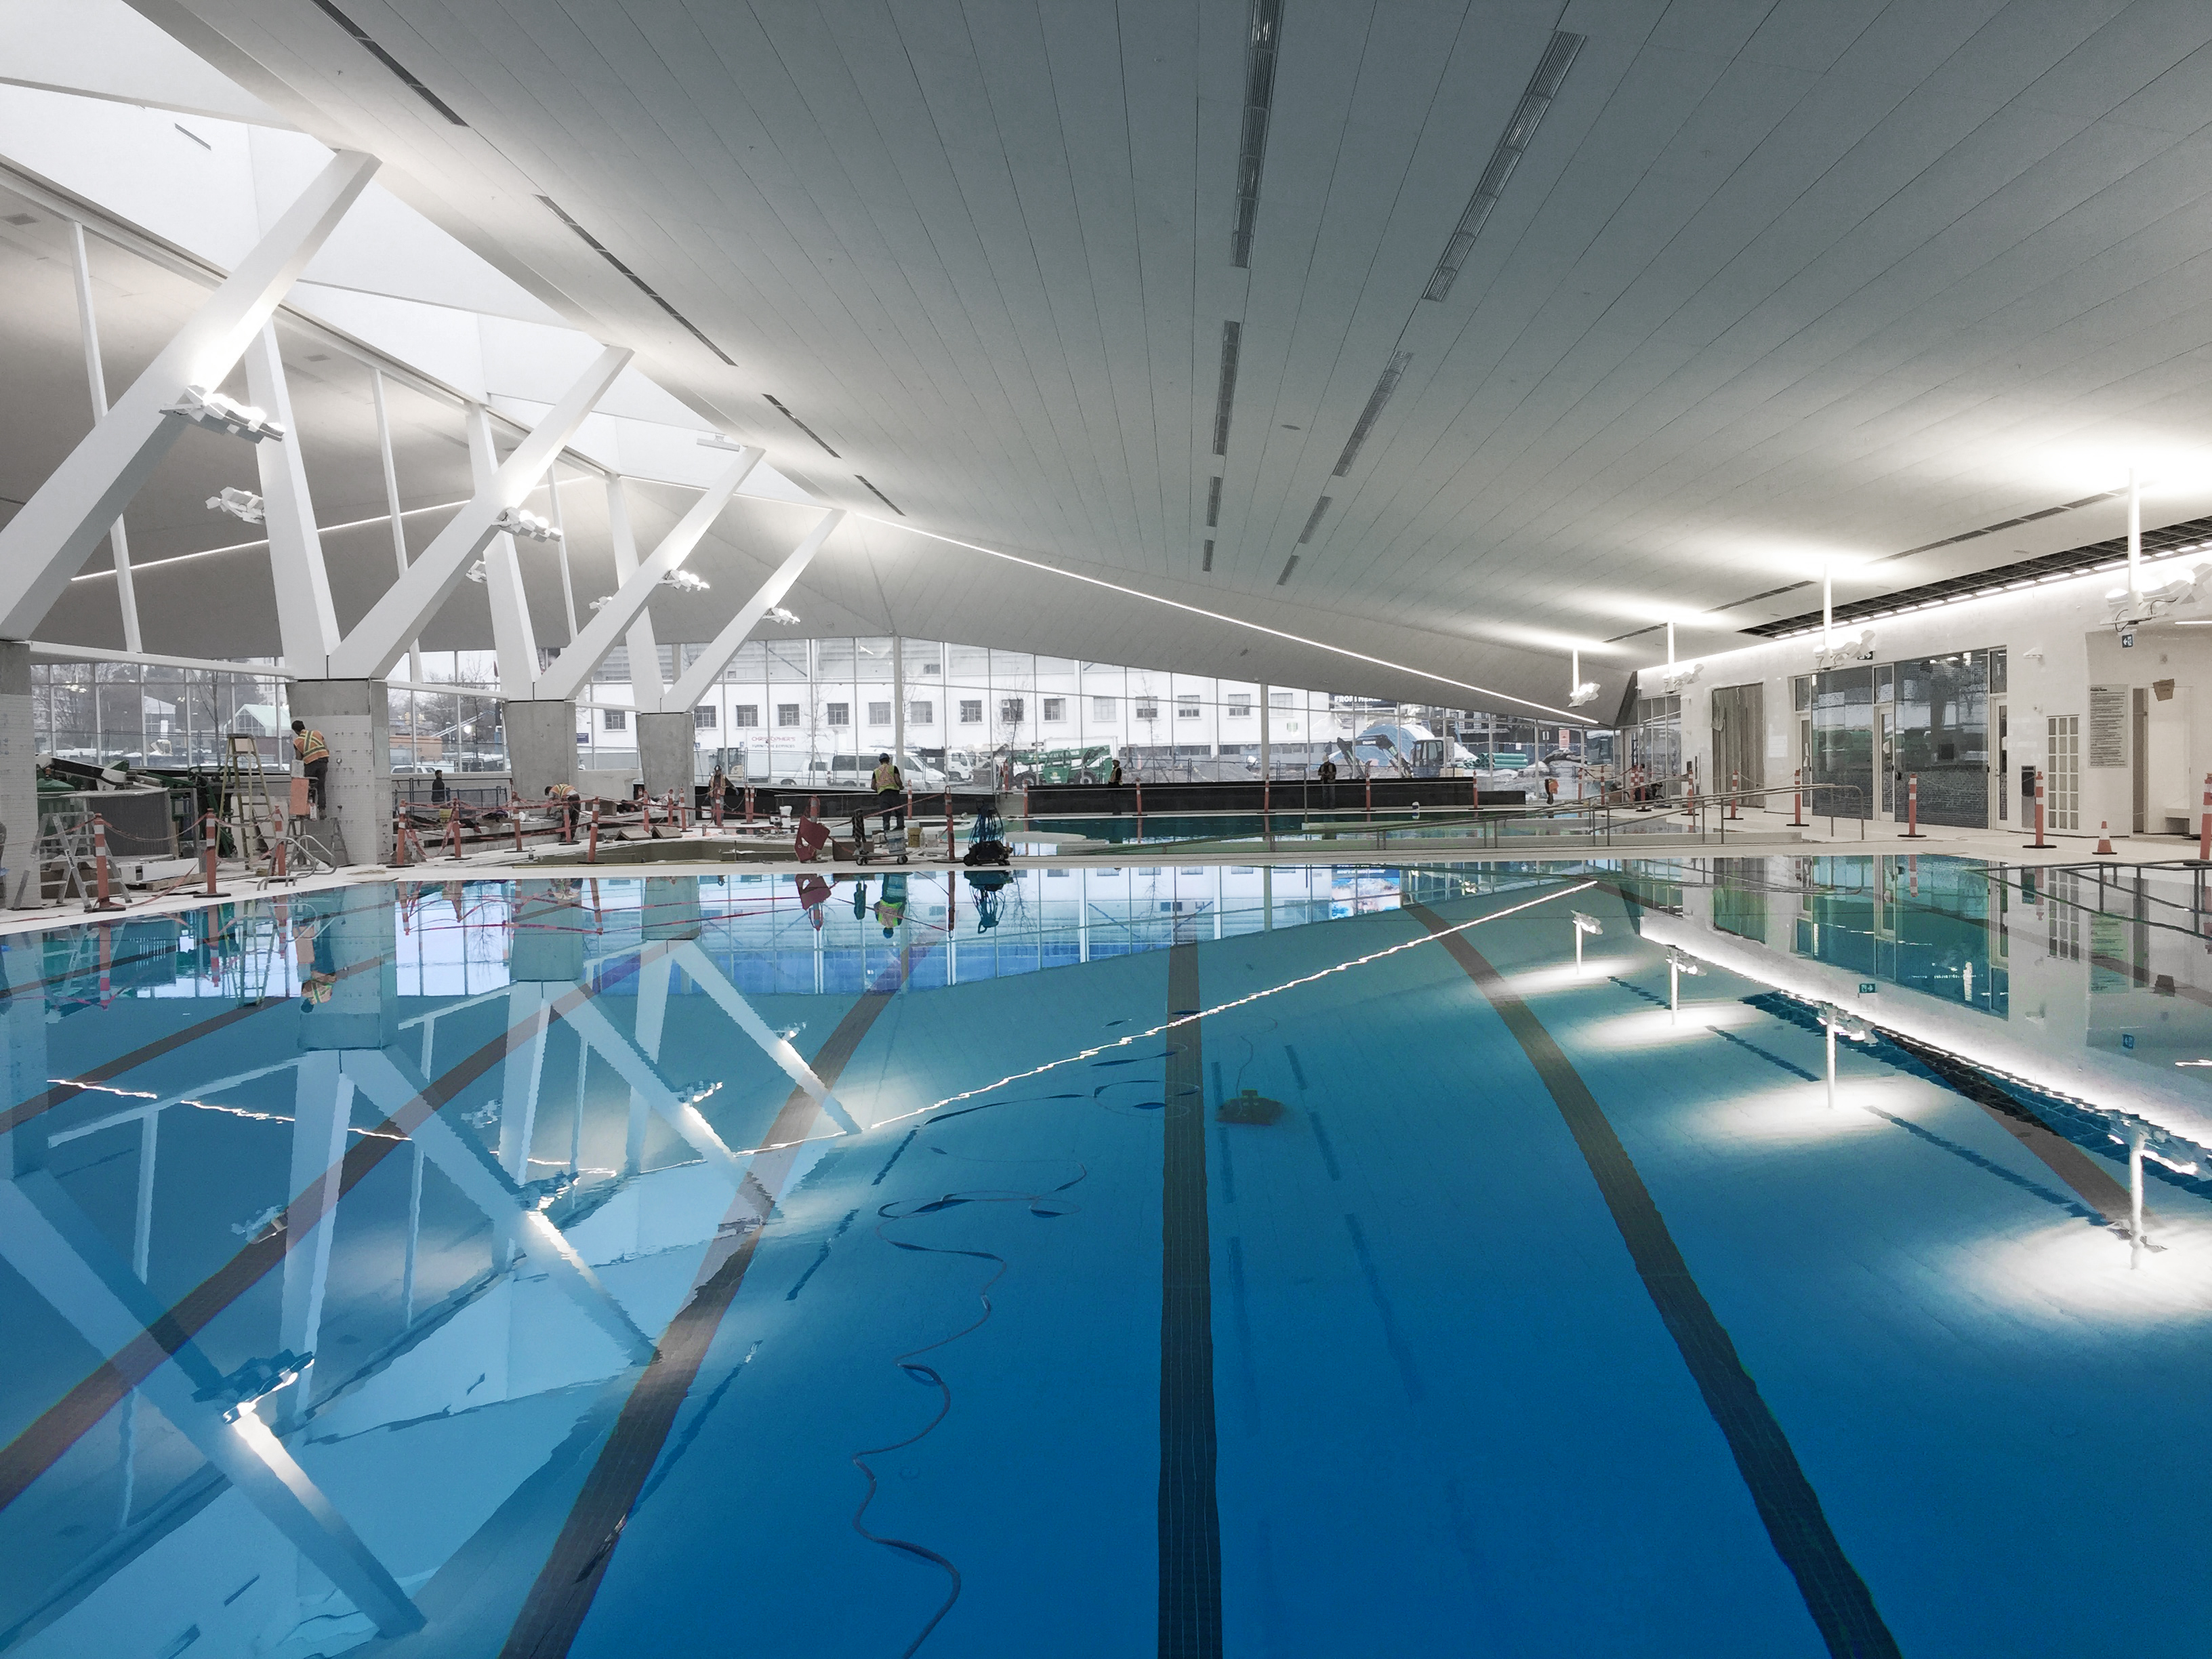 Ubc aquatic centre acton ostry architects - West vancouver swimming pool schedule ...